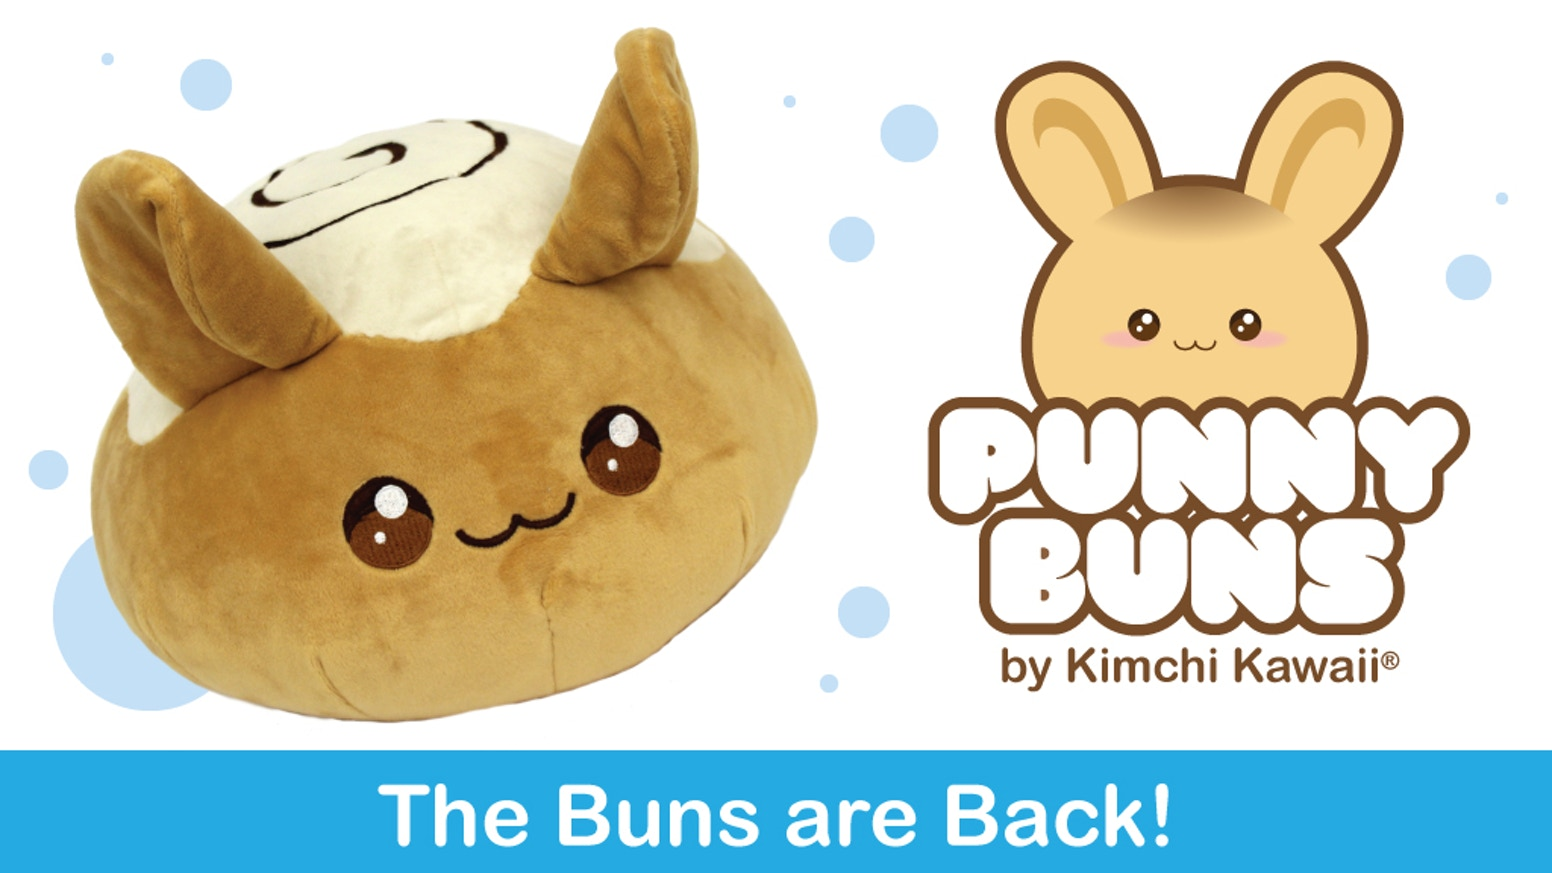 The Buns are Back! Help us fund the second wave of Punny Buns, super cute bread-based bunny puns in plush form!